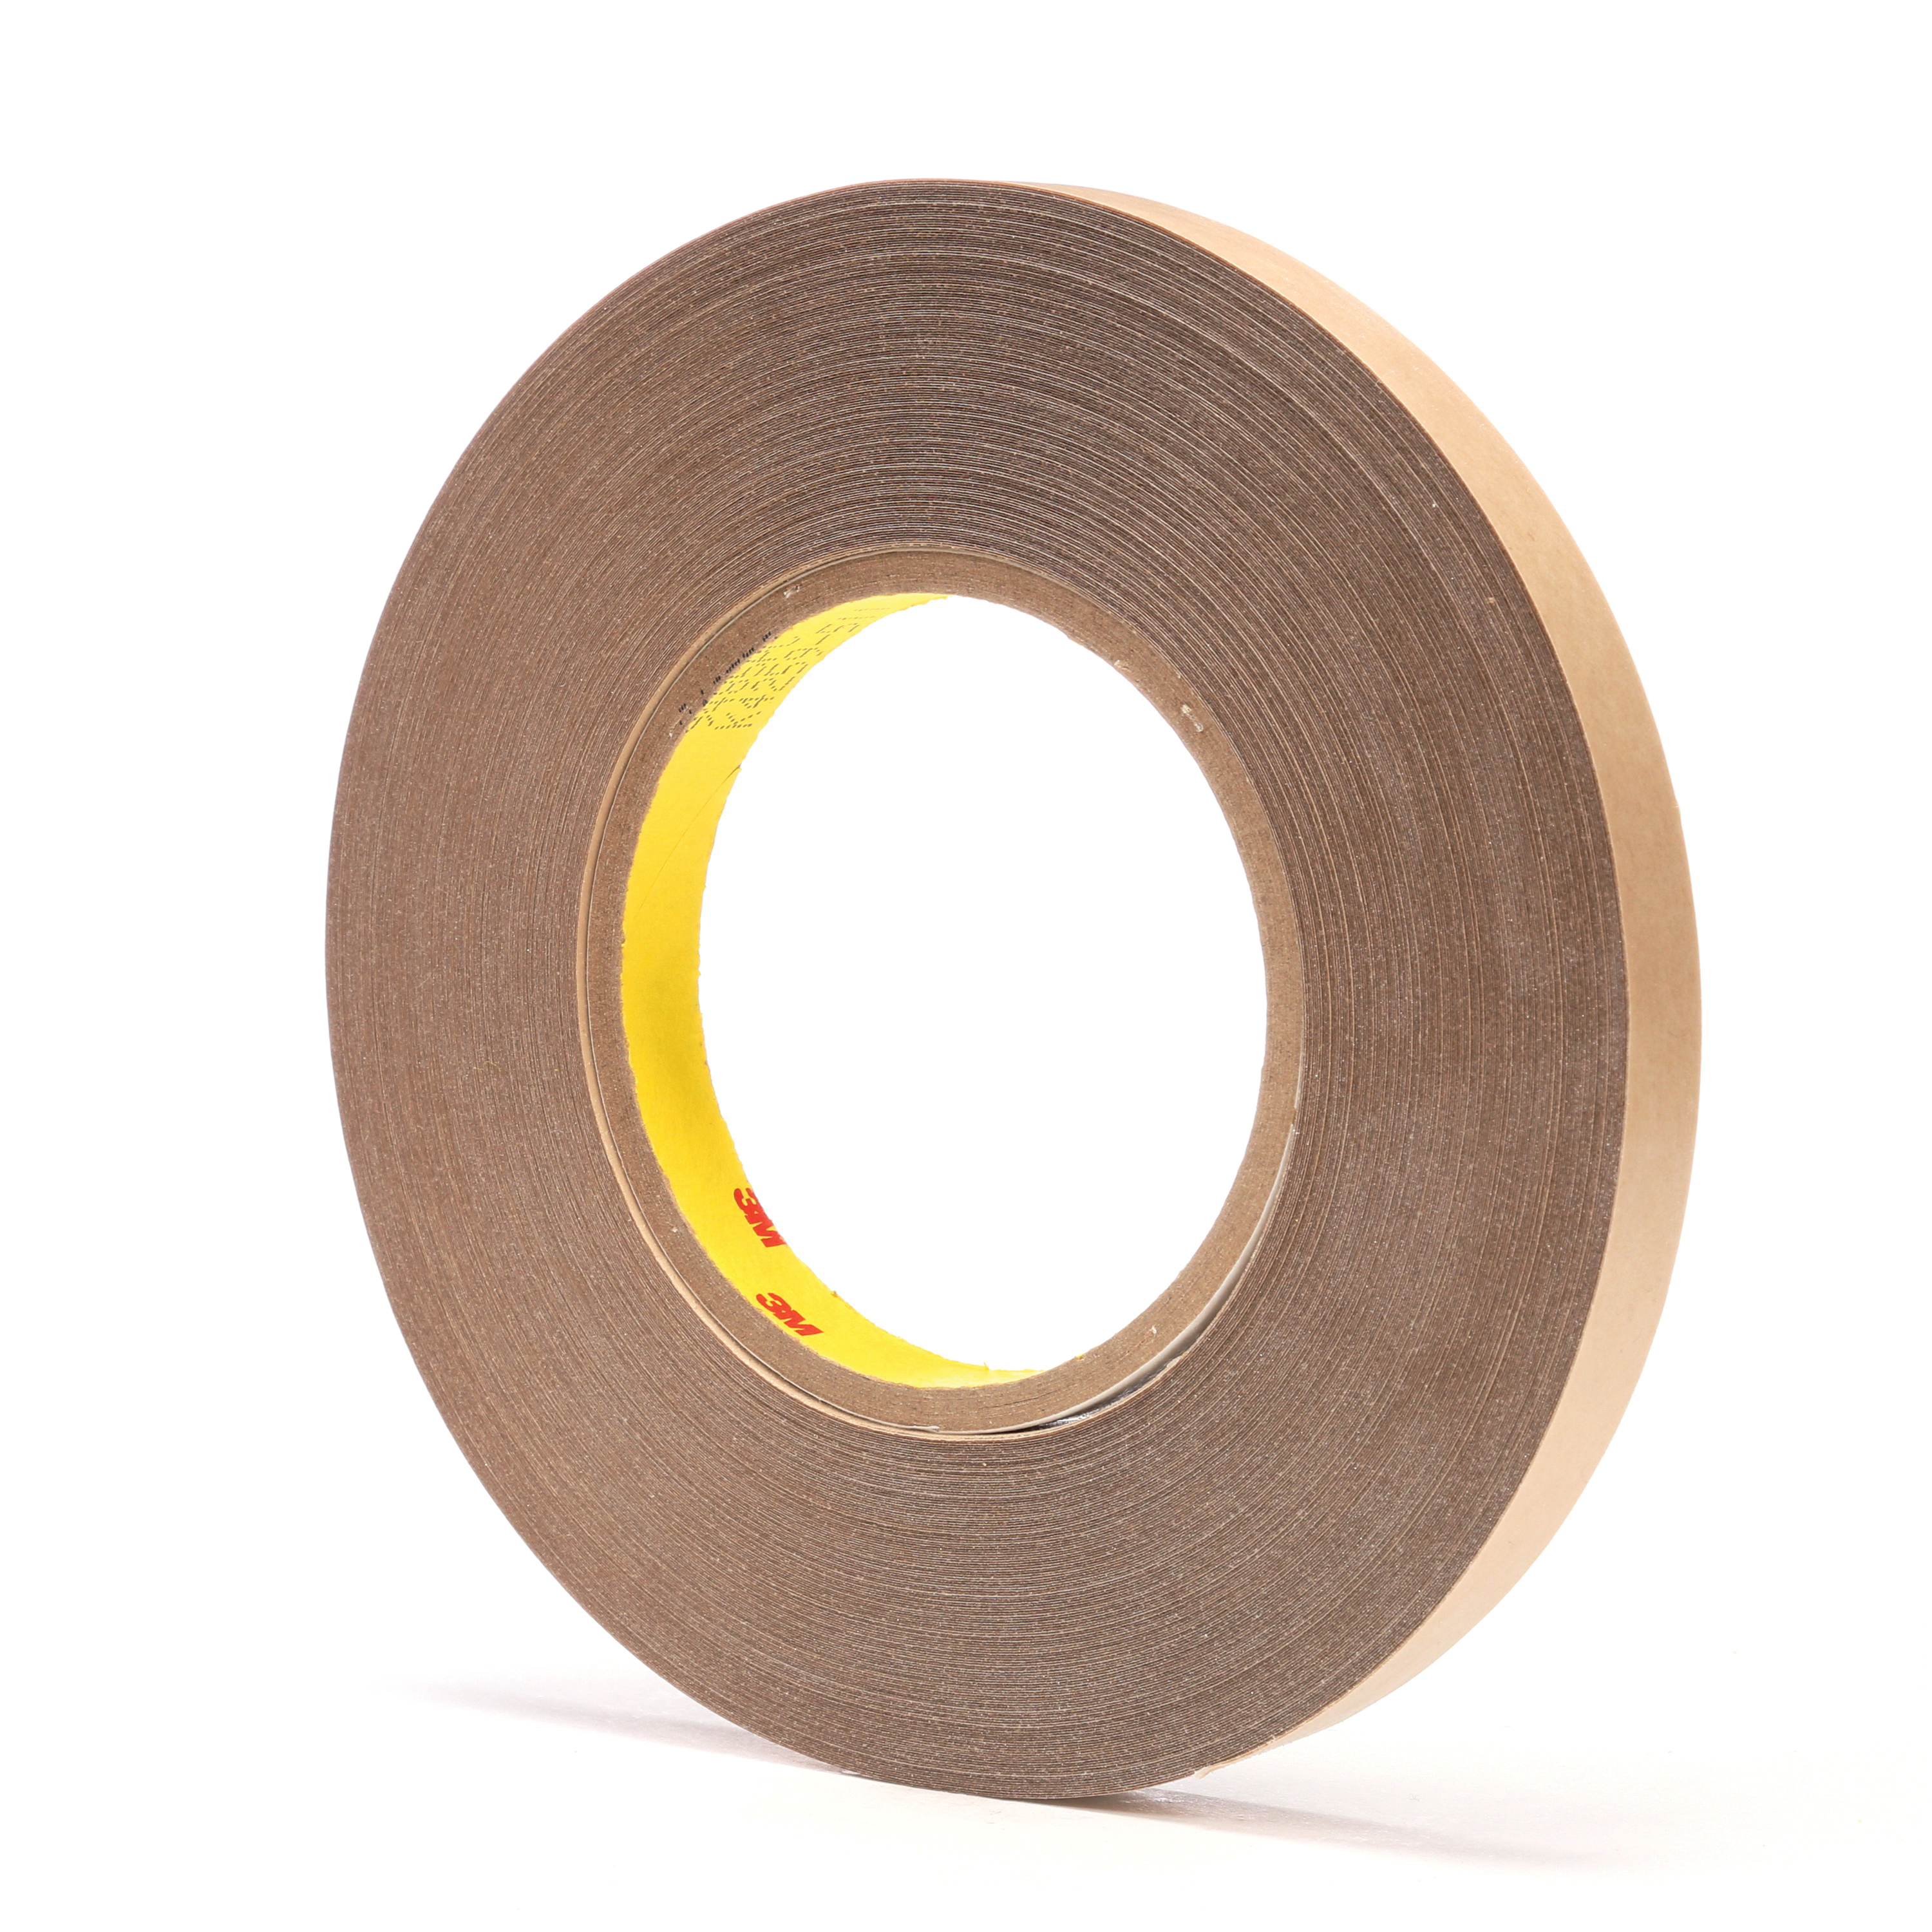 3M™ 021200-63476 High Tack High Performance Adhesive Transfer Tape, 60 yd L x 1/2 in W, 9.2 mil THK, 5 mil 350 Acrylic Adhesive, Clear